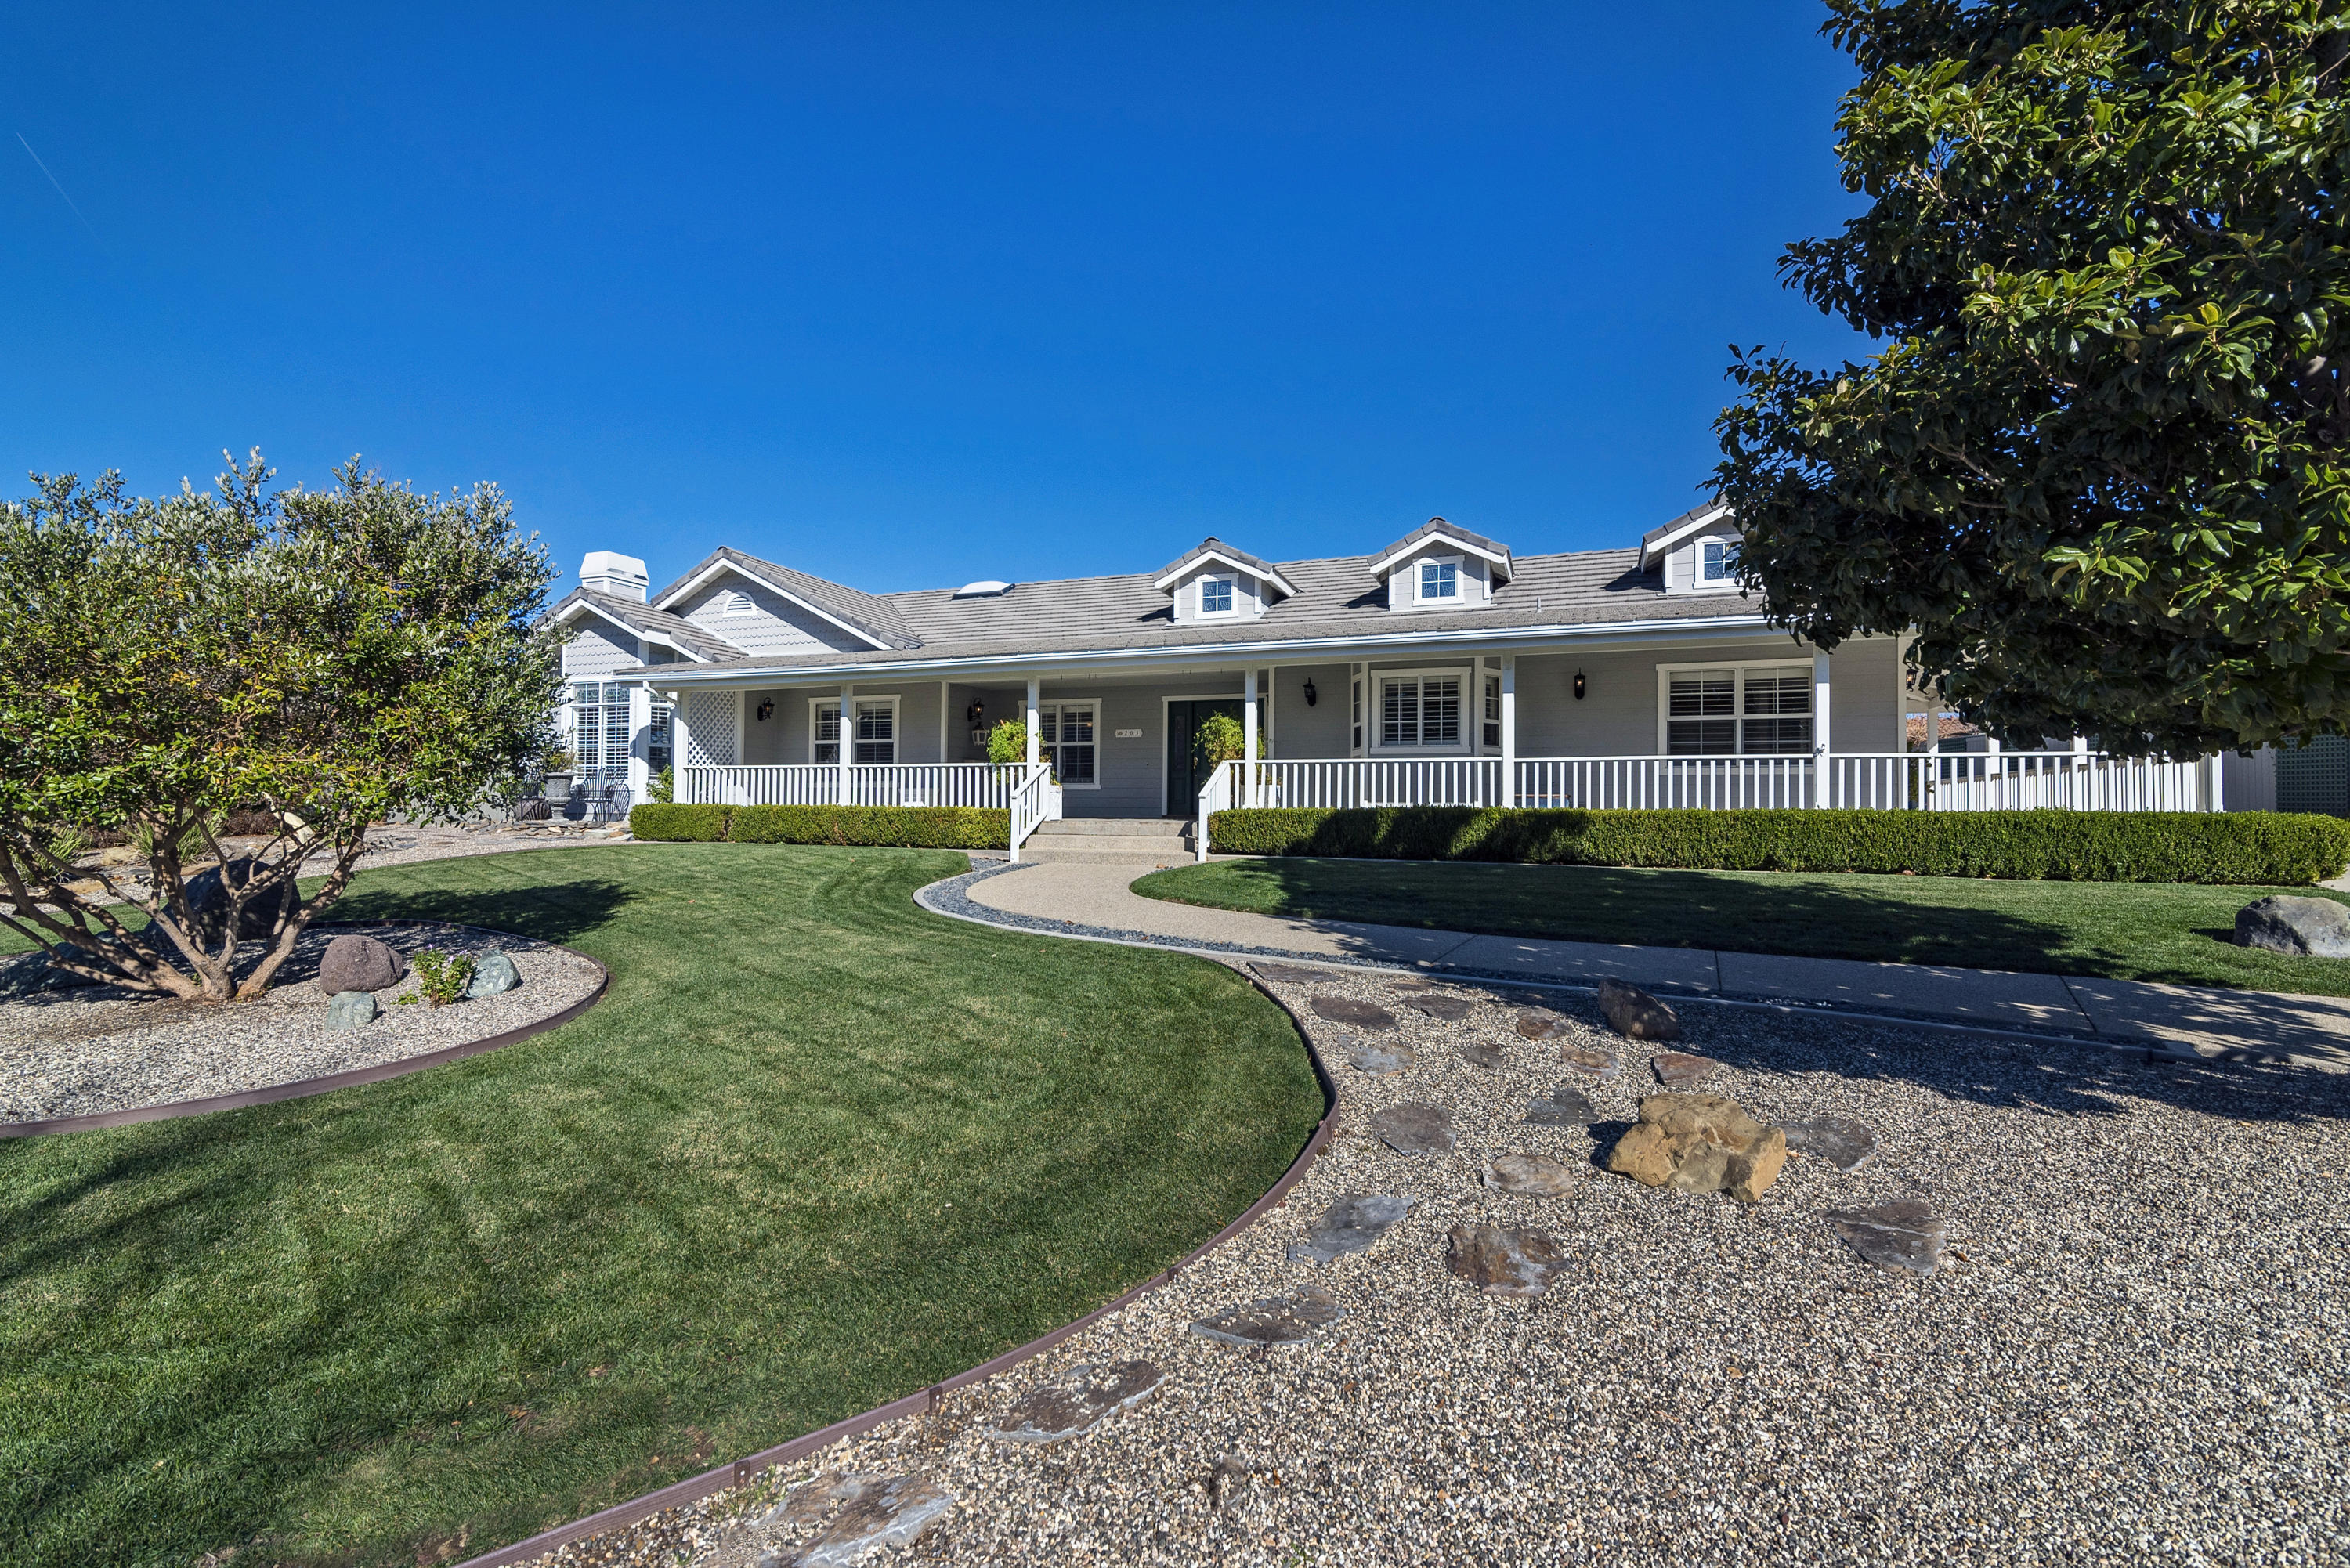 Property photo for 203 Valhalla Dr Solvang, California 93463 - 18-181